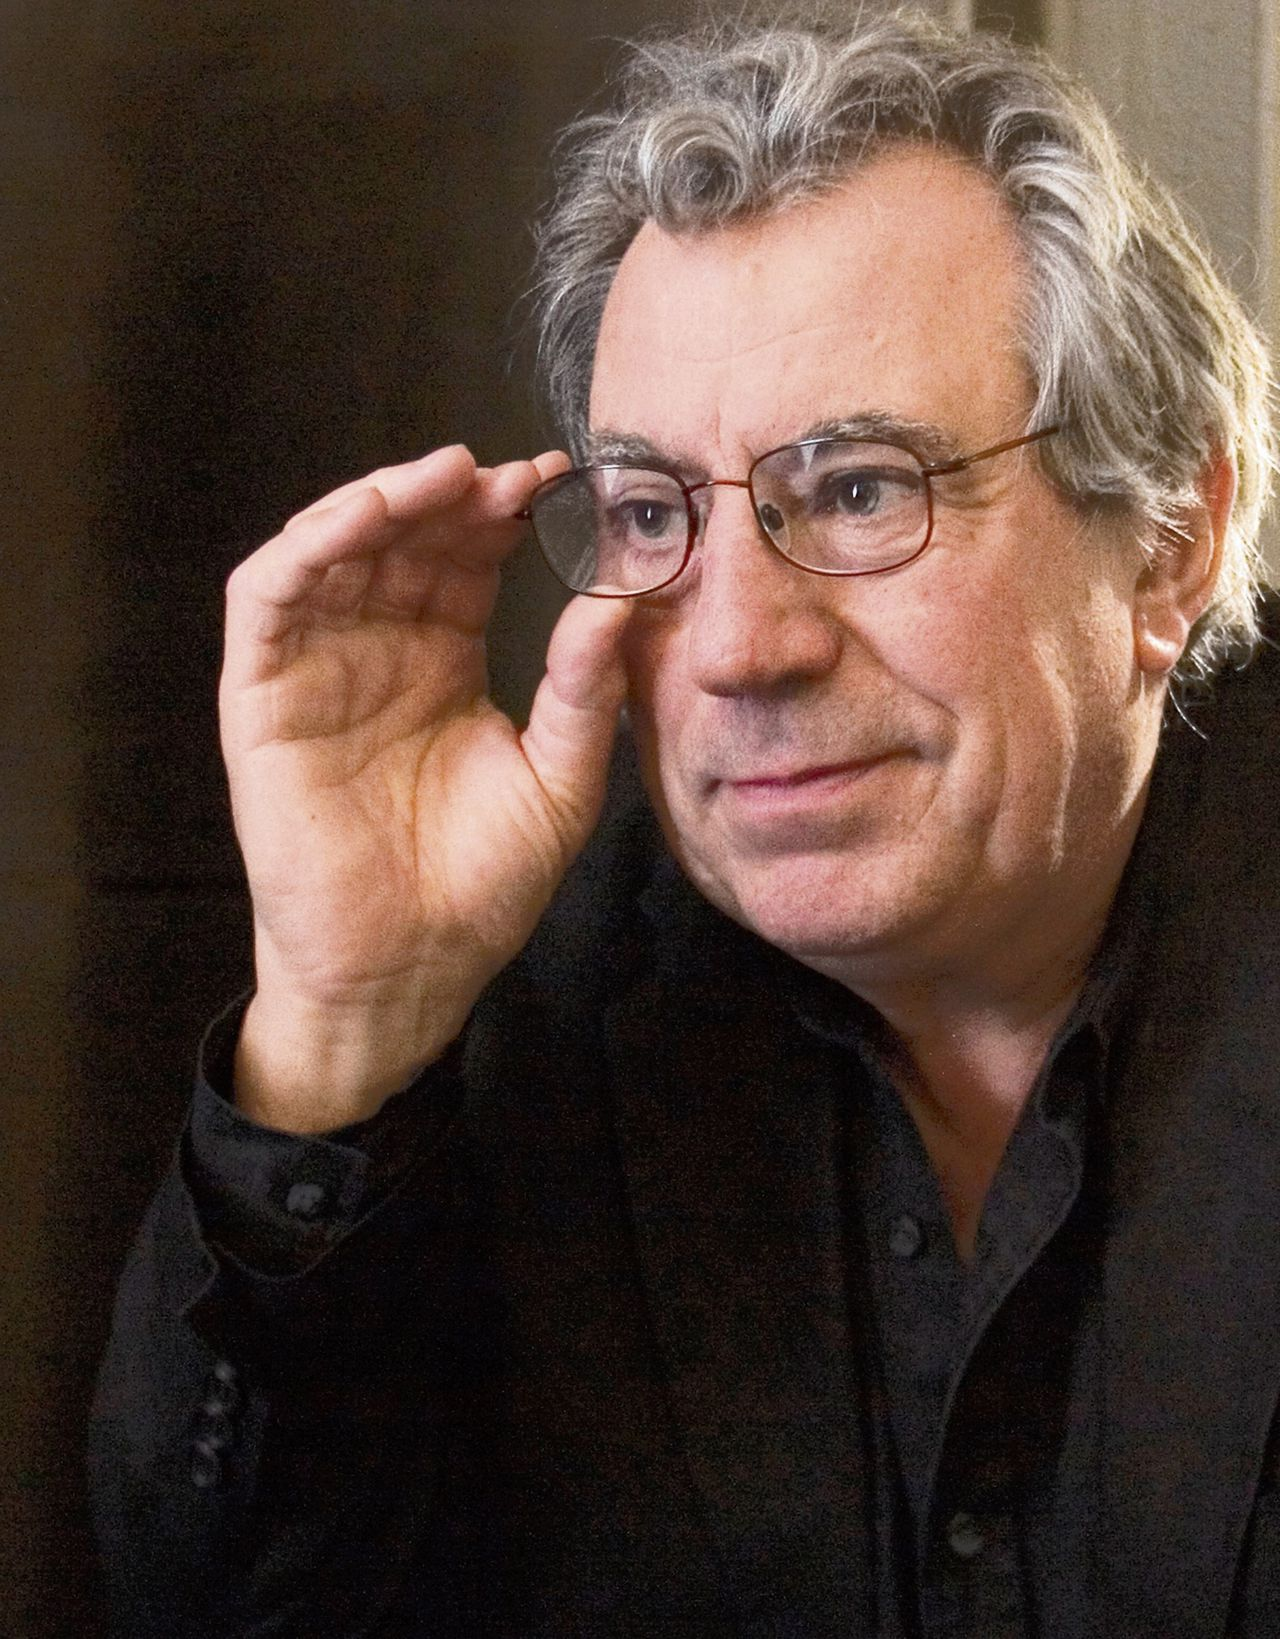 Terry Jones in 2008.